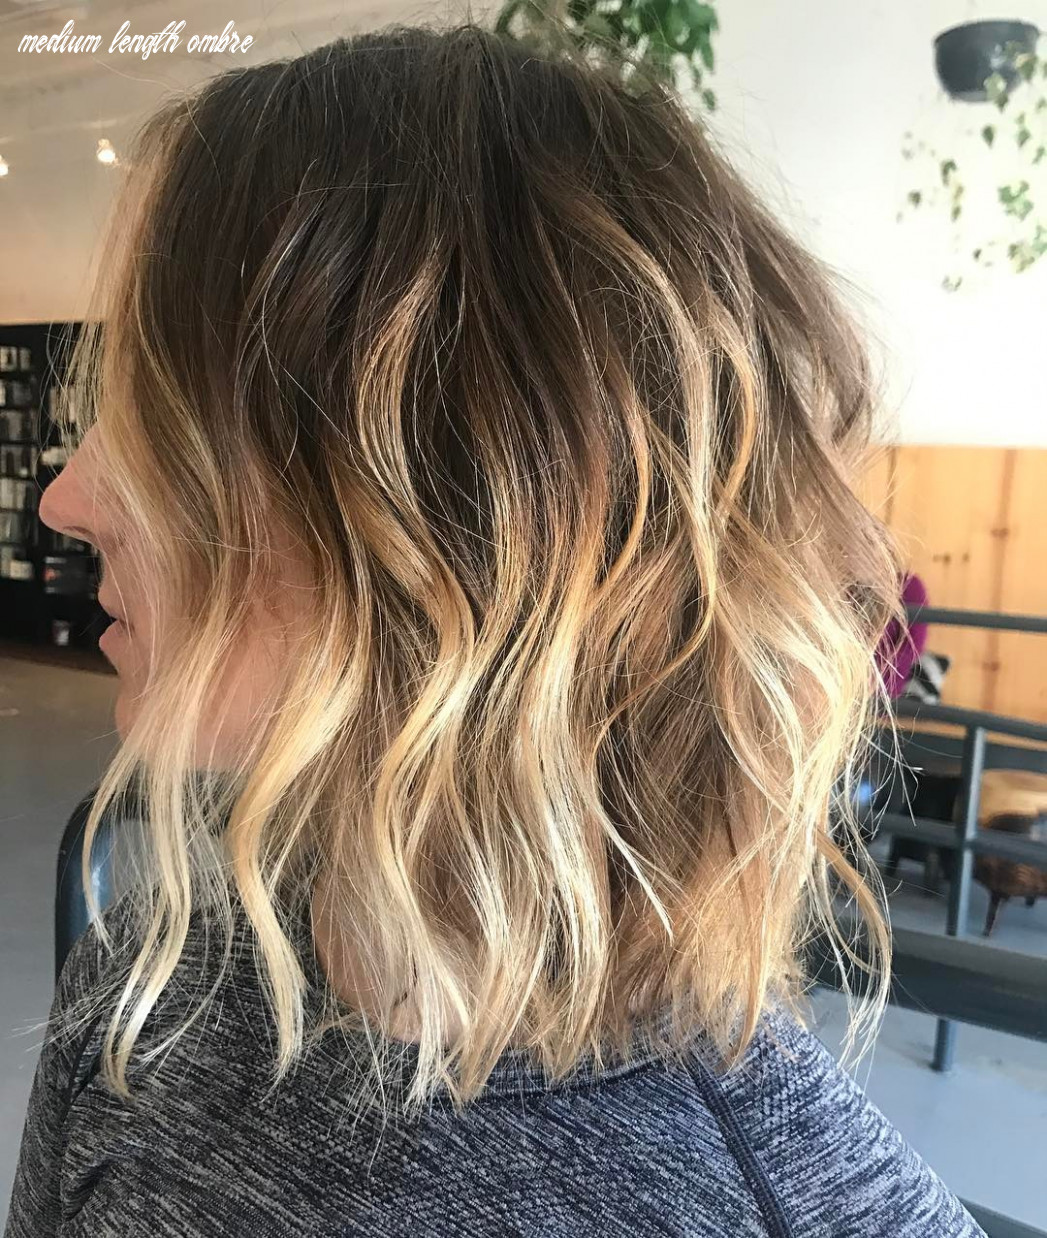 11 Chic Hairstyle Ideas For Medium Length Hair - Easy Hairstyles